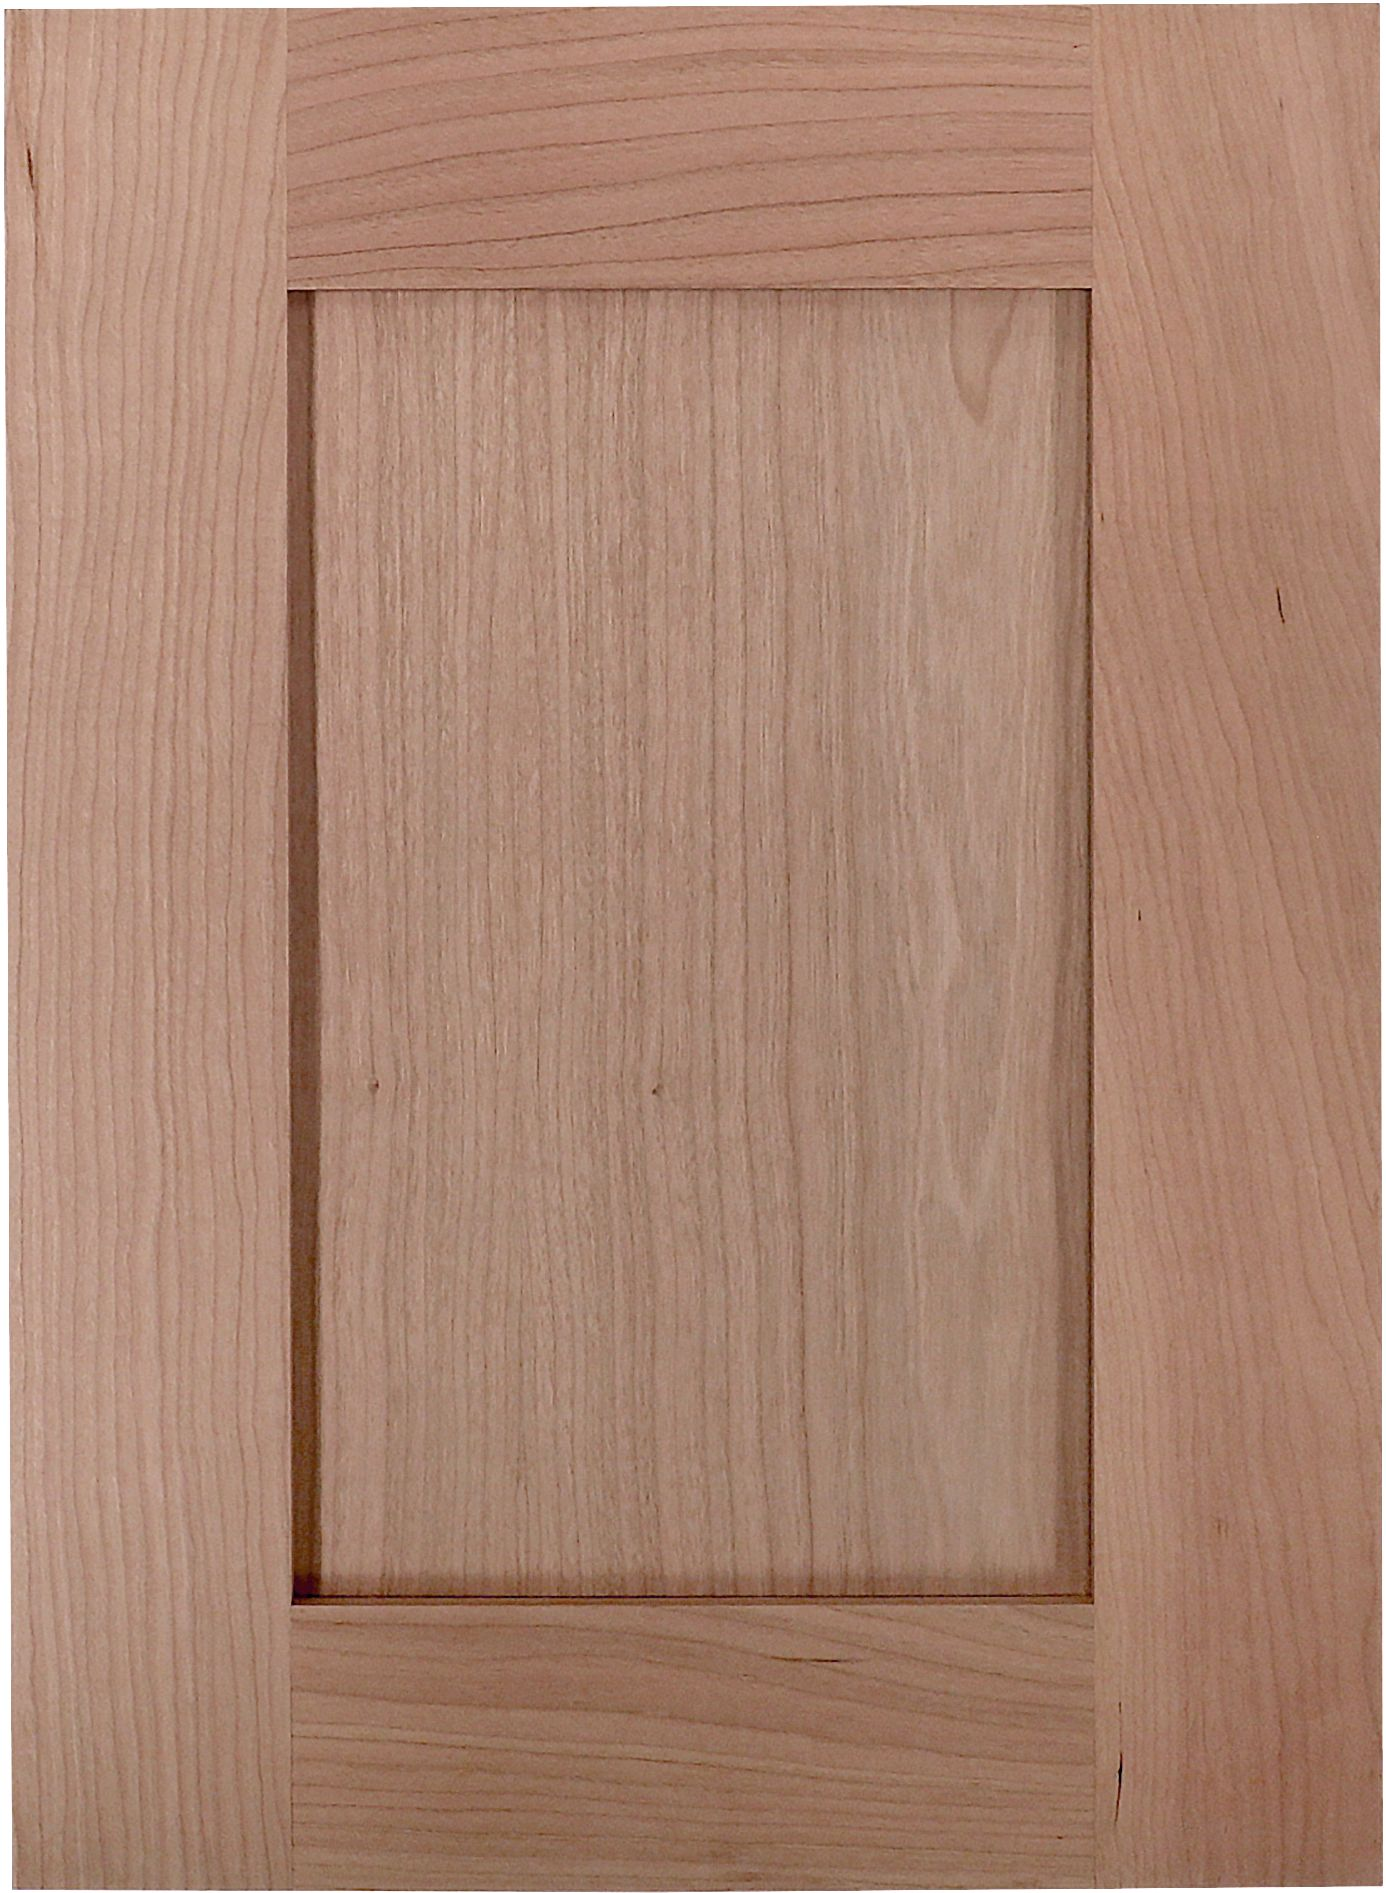 Cabinet doors n more now offers cabinet door samples in all cabinet door styles and species including hard maple paint grade hard maple red oak cherry